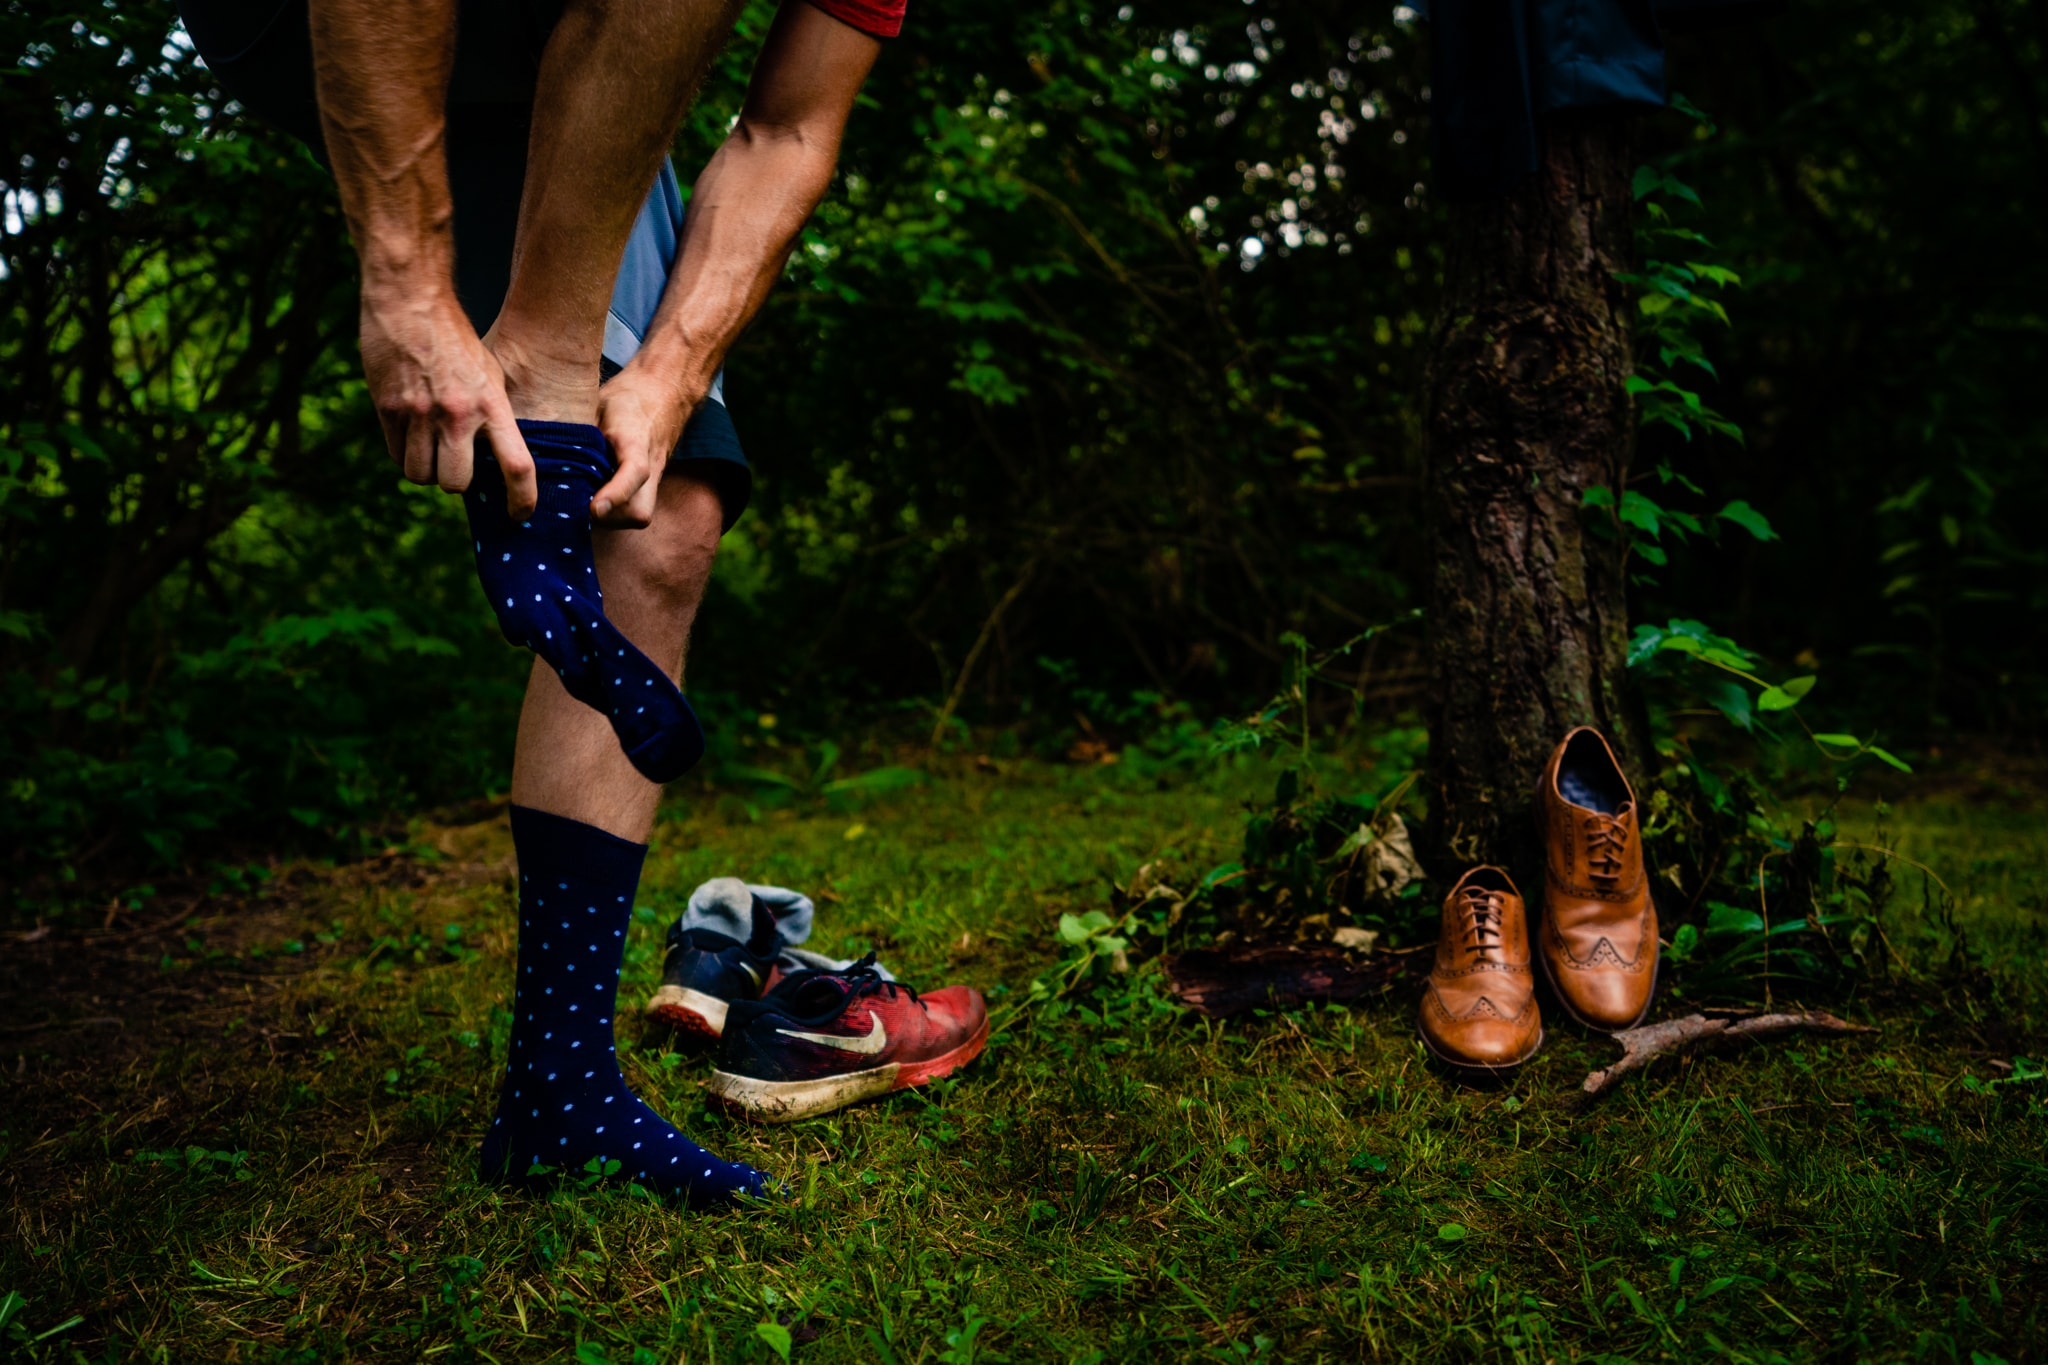 Man puts dress socks on outside before his wedding in Cincinnati, Ohio